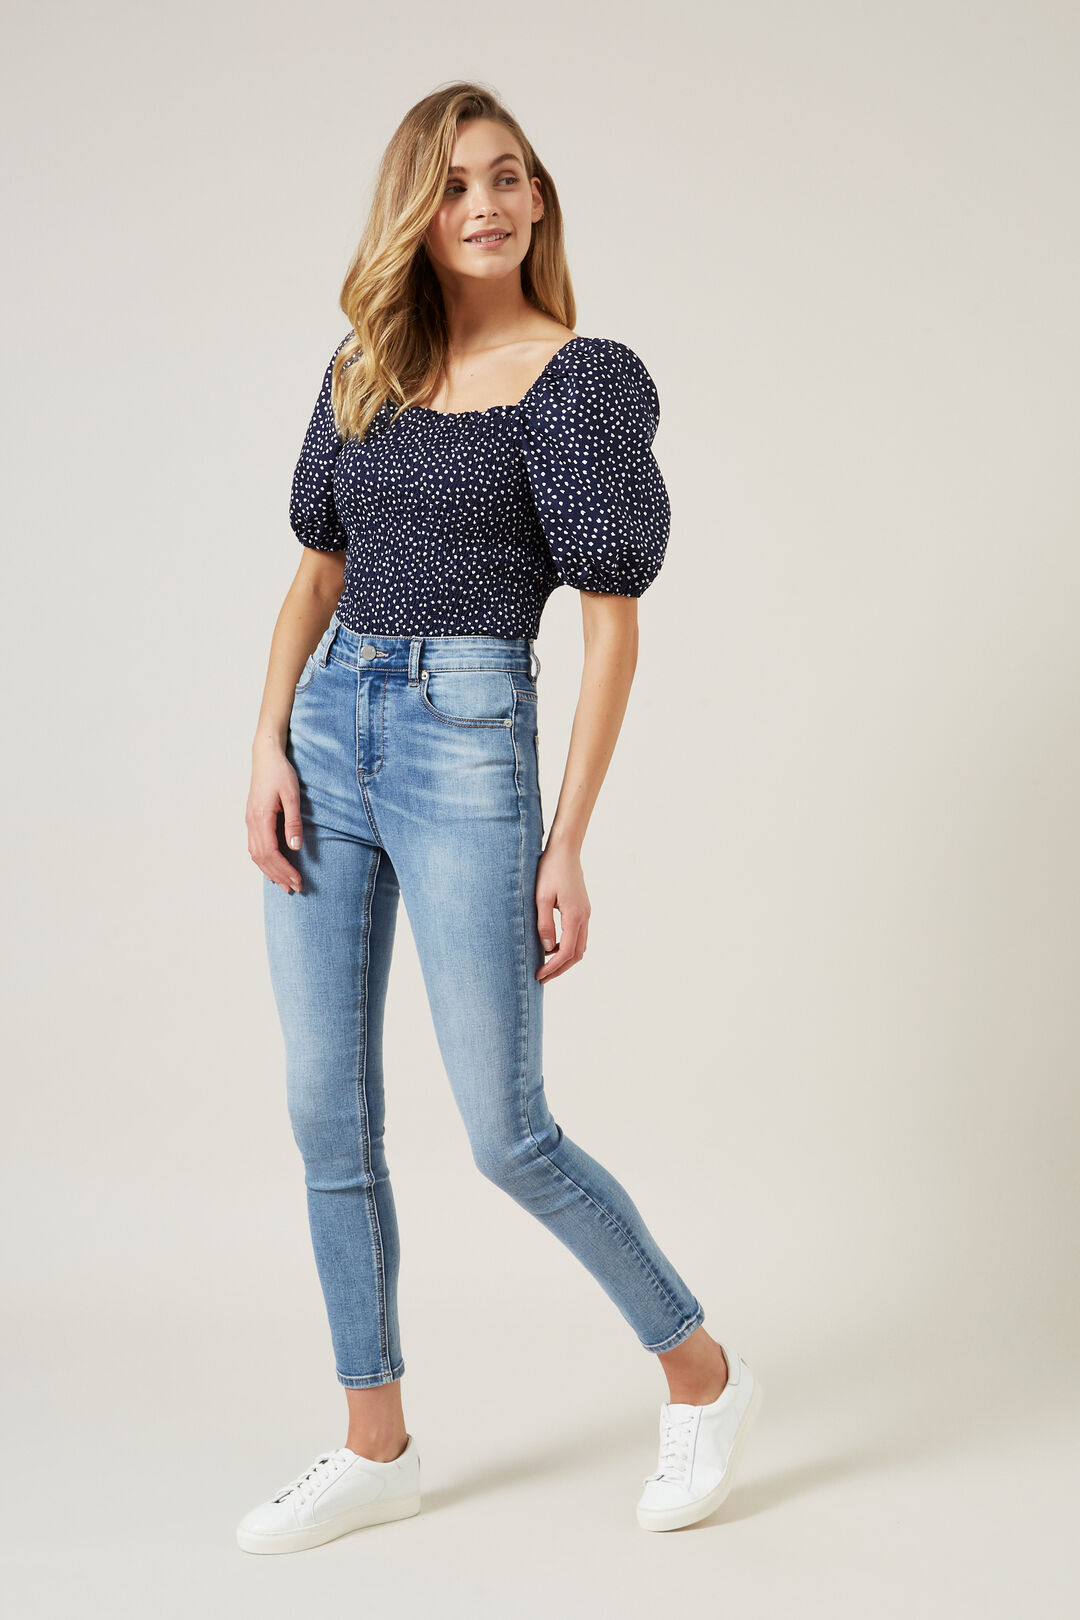 PUFF SLEEVE SHIRRED TOP  FRENCH NAVY/WHITE  hi-res